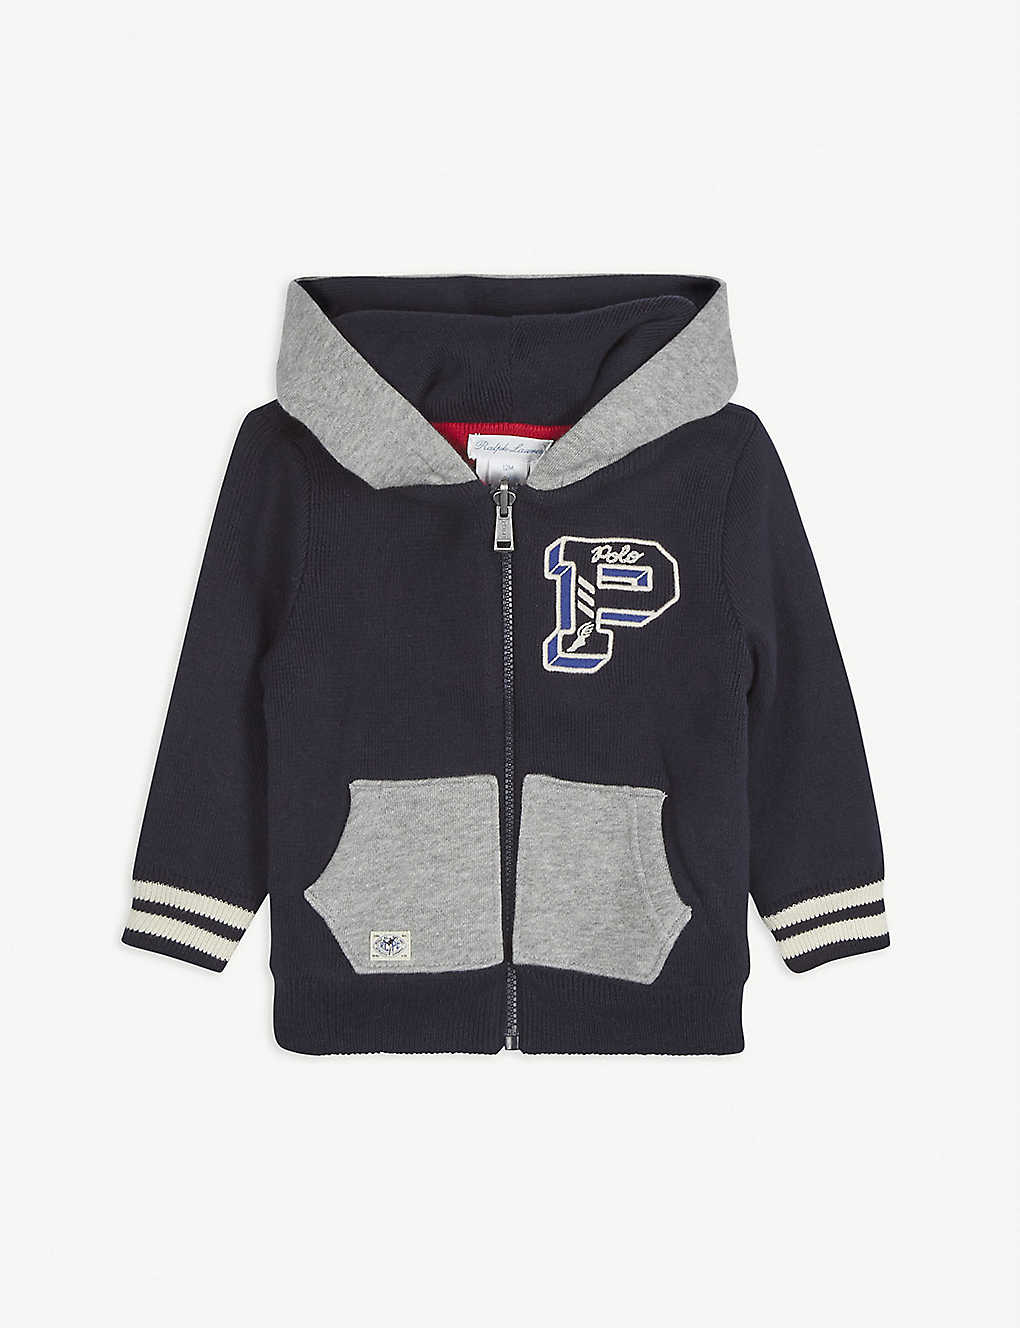 RALPH LAUREN: Reversible cotton hoody 3-18 months